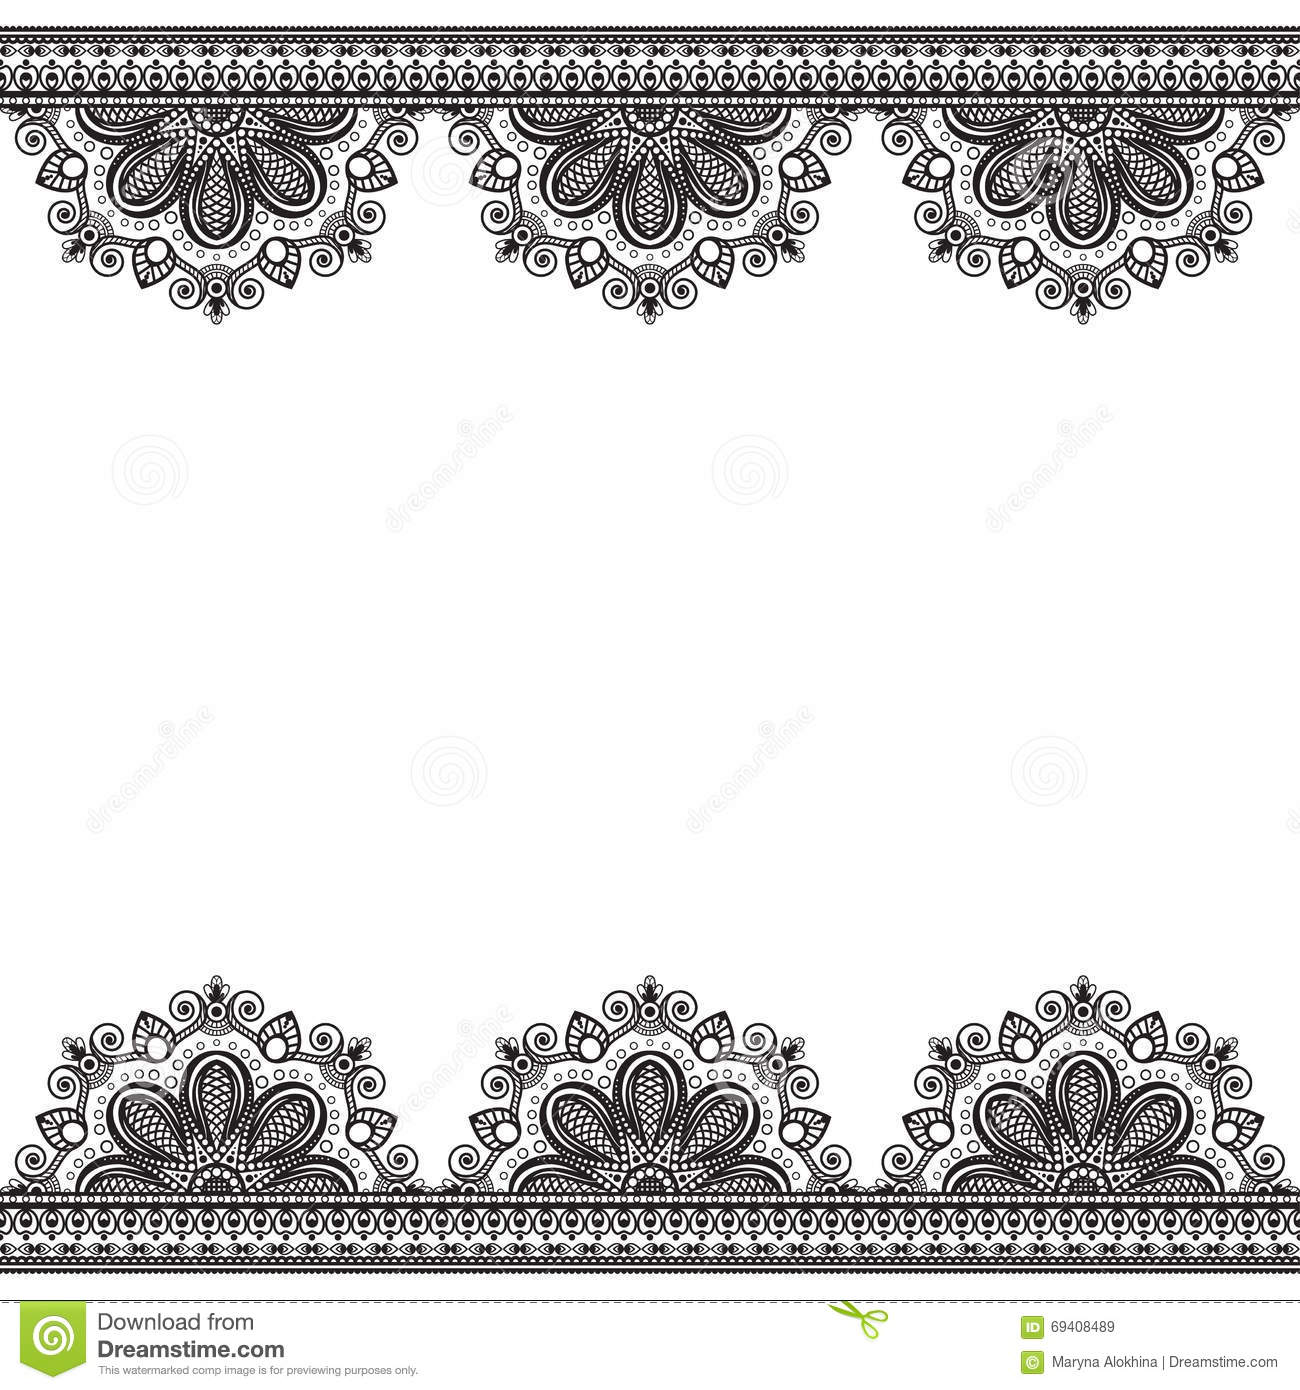 Ornate vintage vector background in mehndi style royalty free stock - Border Pattern Elements With Flowers In Indian Mehndi Style For Card And Tattoo Isolated On White